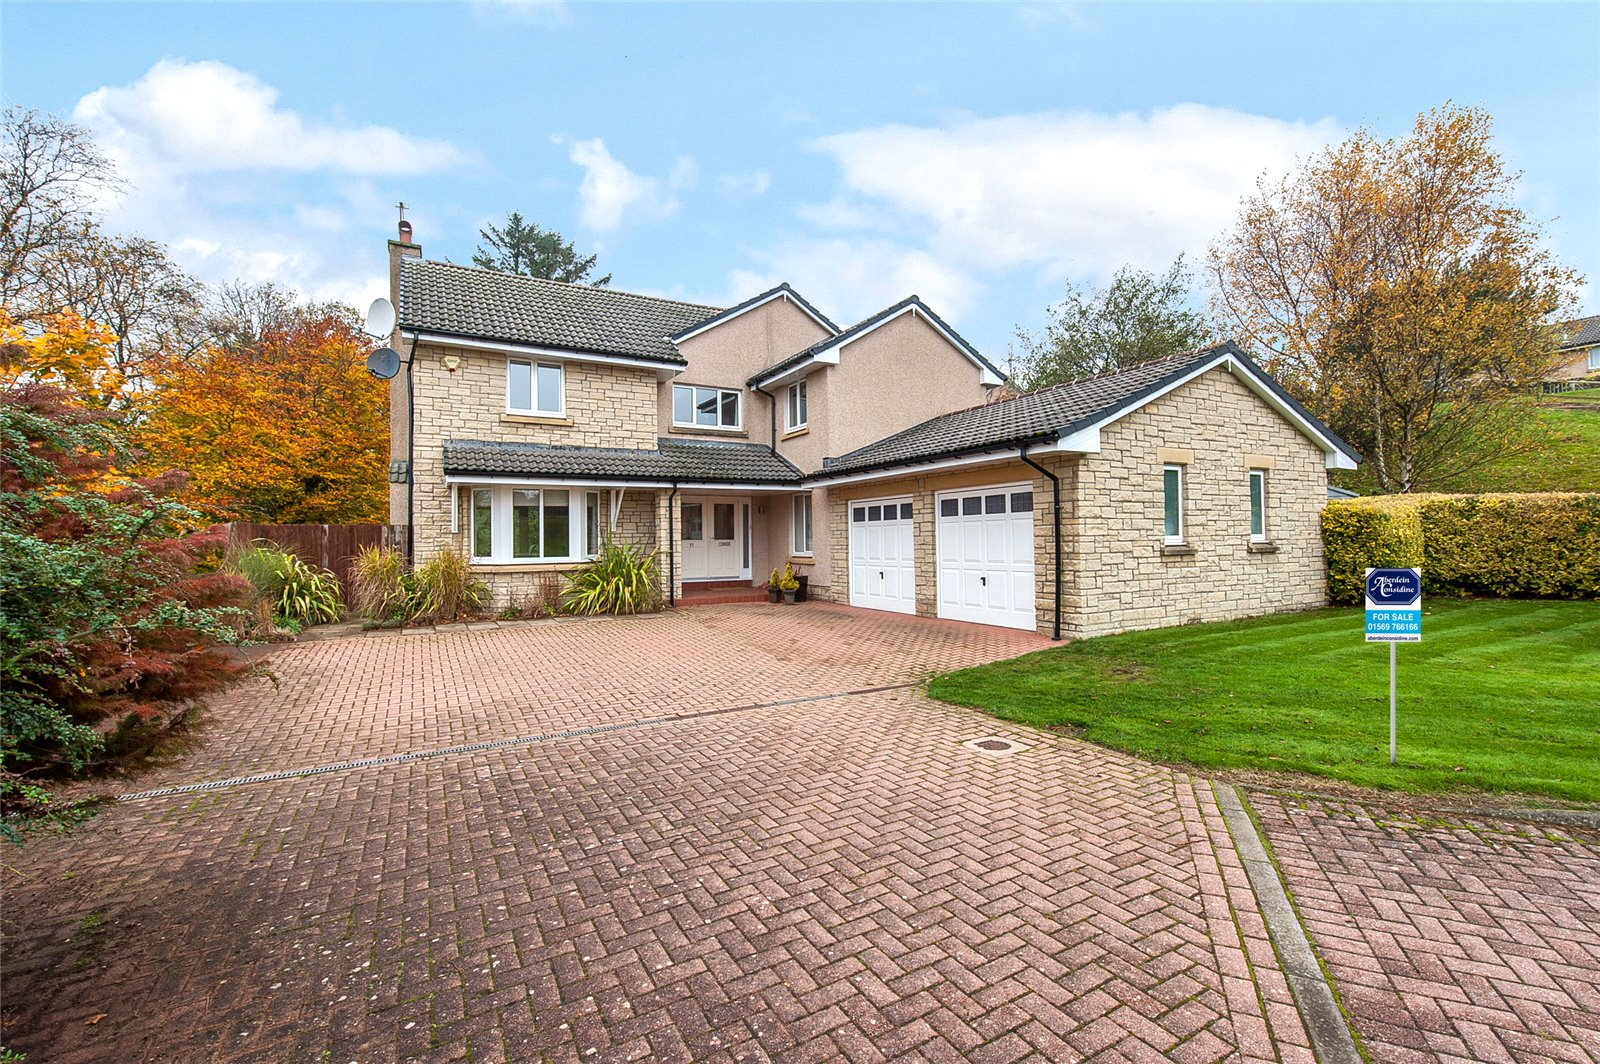 This extended five bedroom house could be the perfect family home...